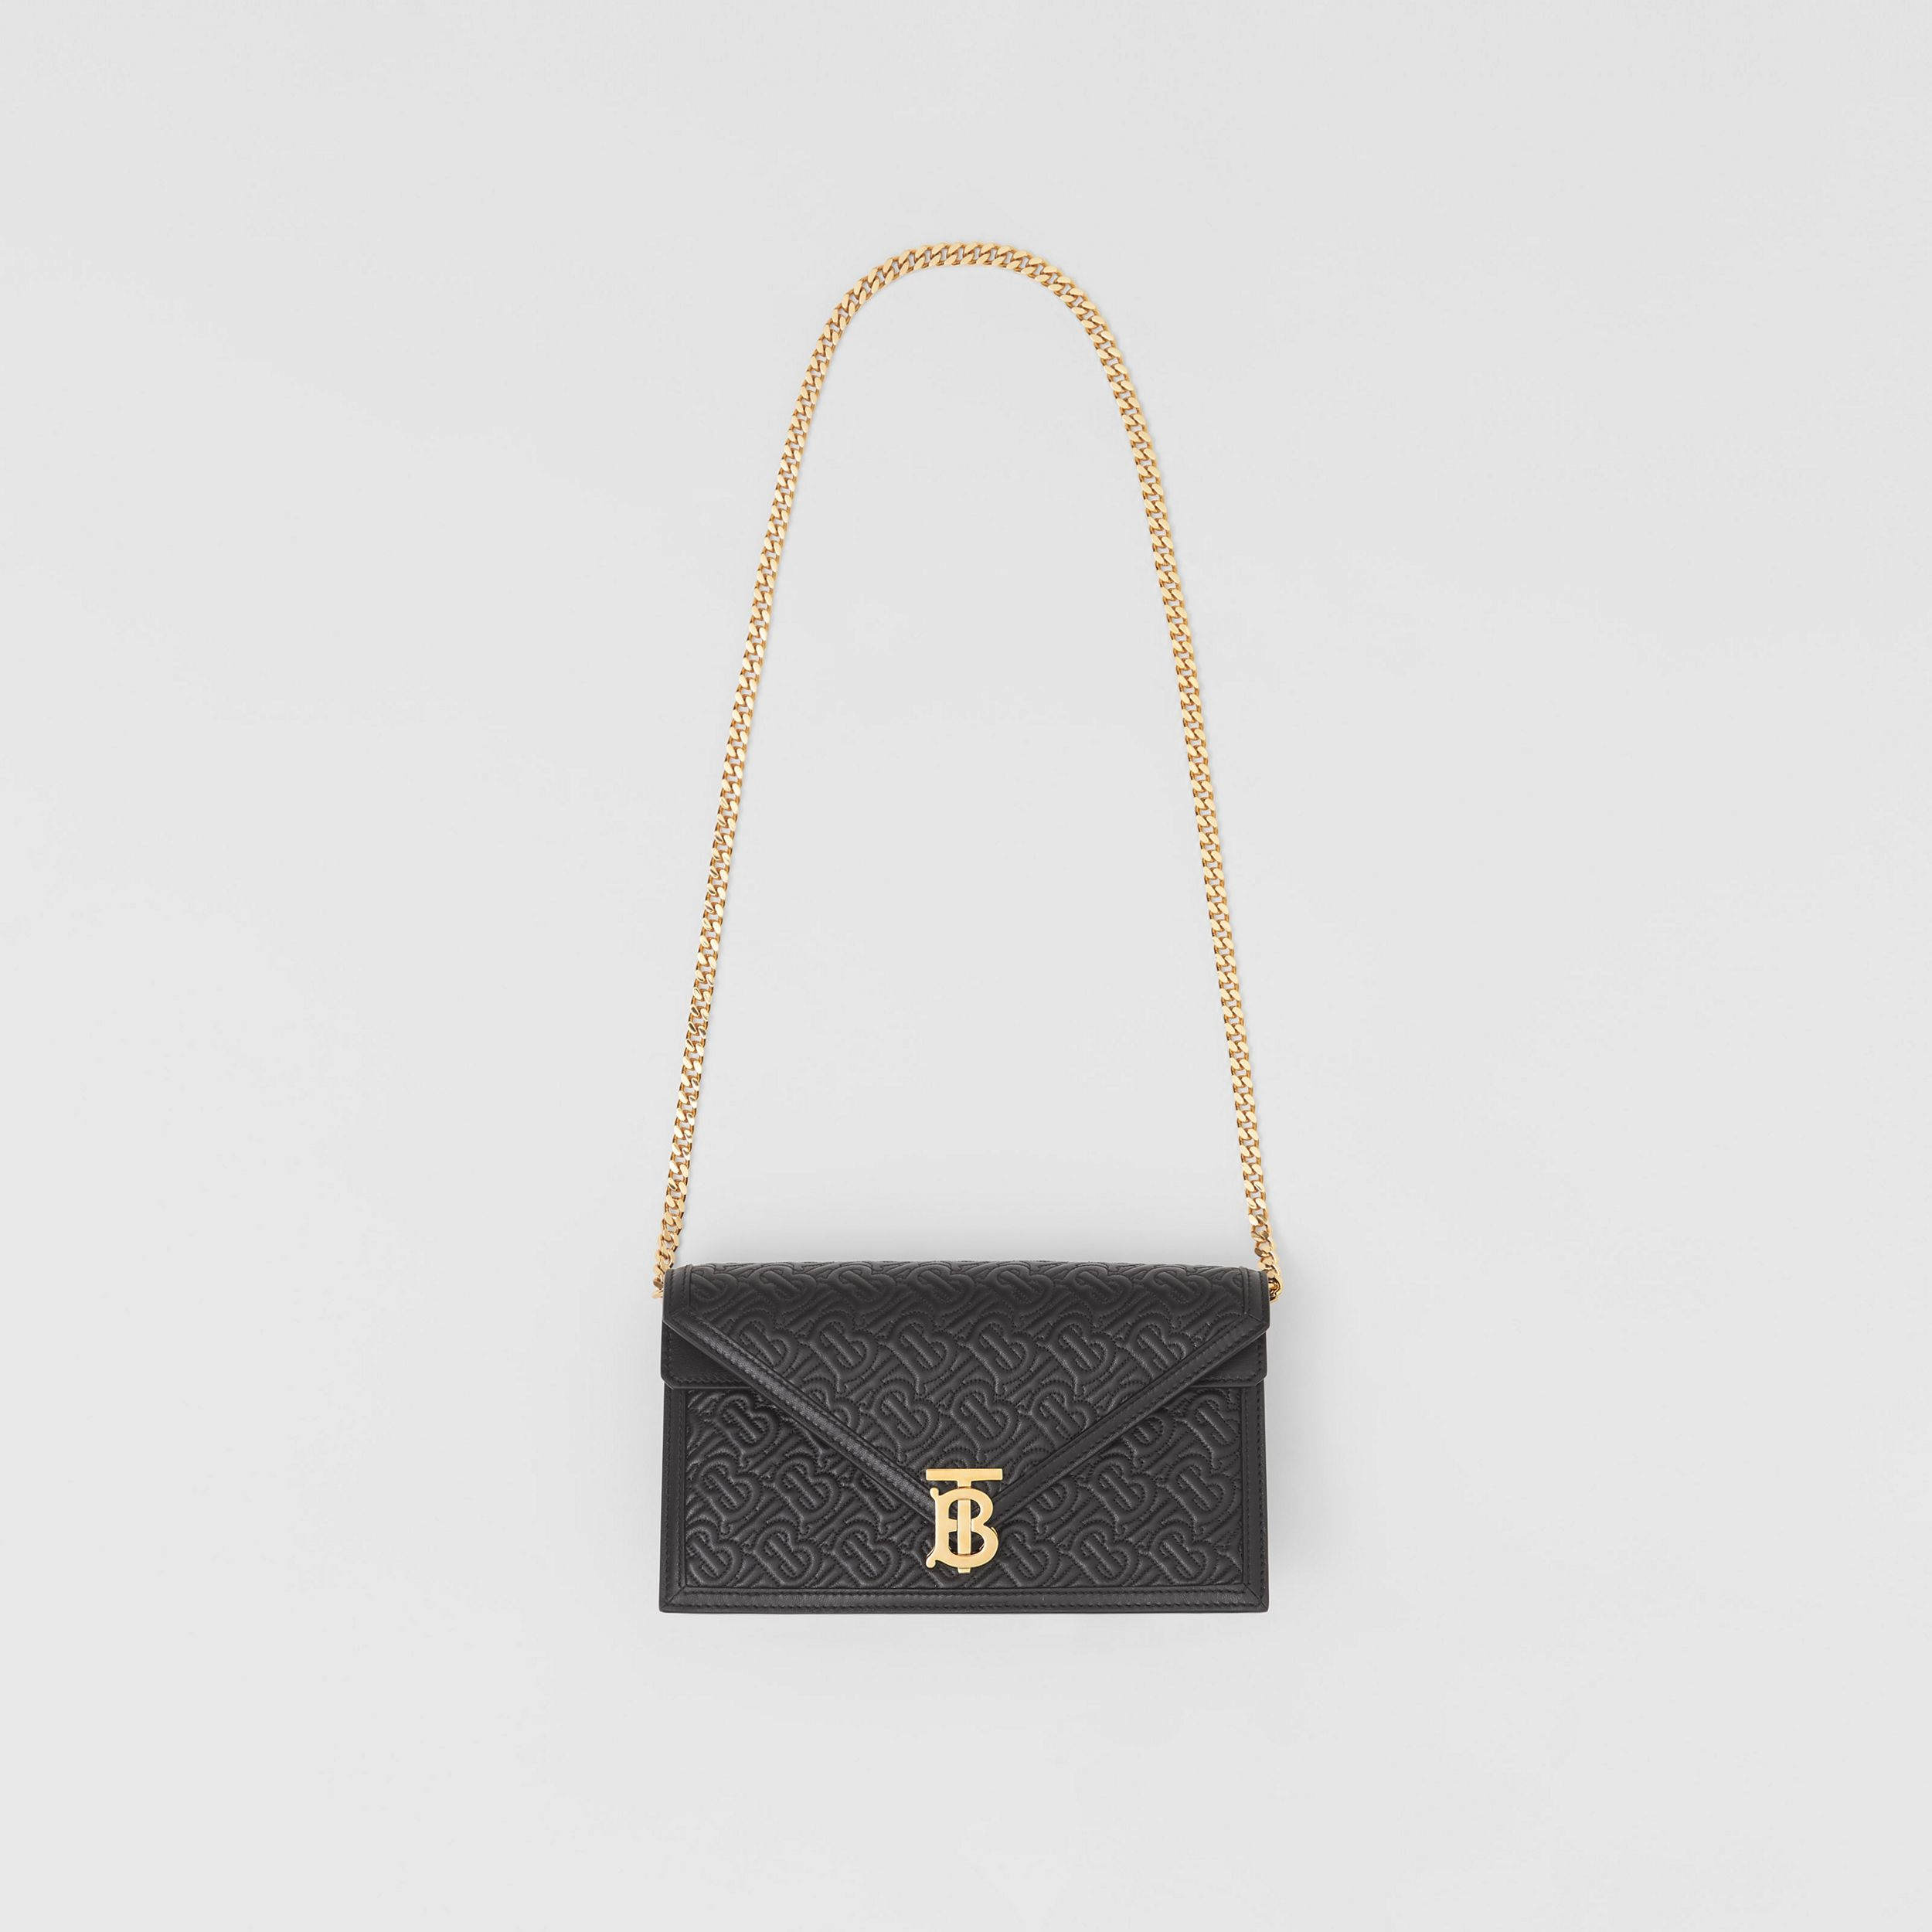 Small Quilted Monogram TB Envelope Clutch in Black - Women | Burberry Canada - 4